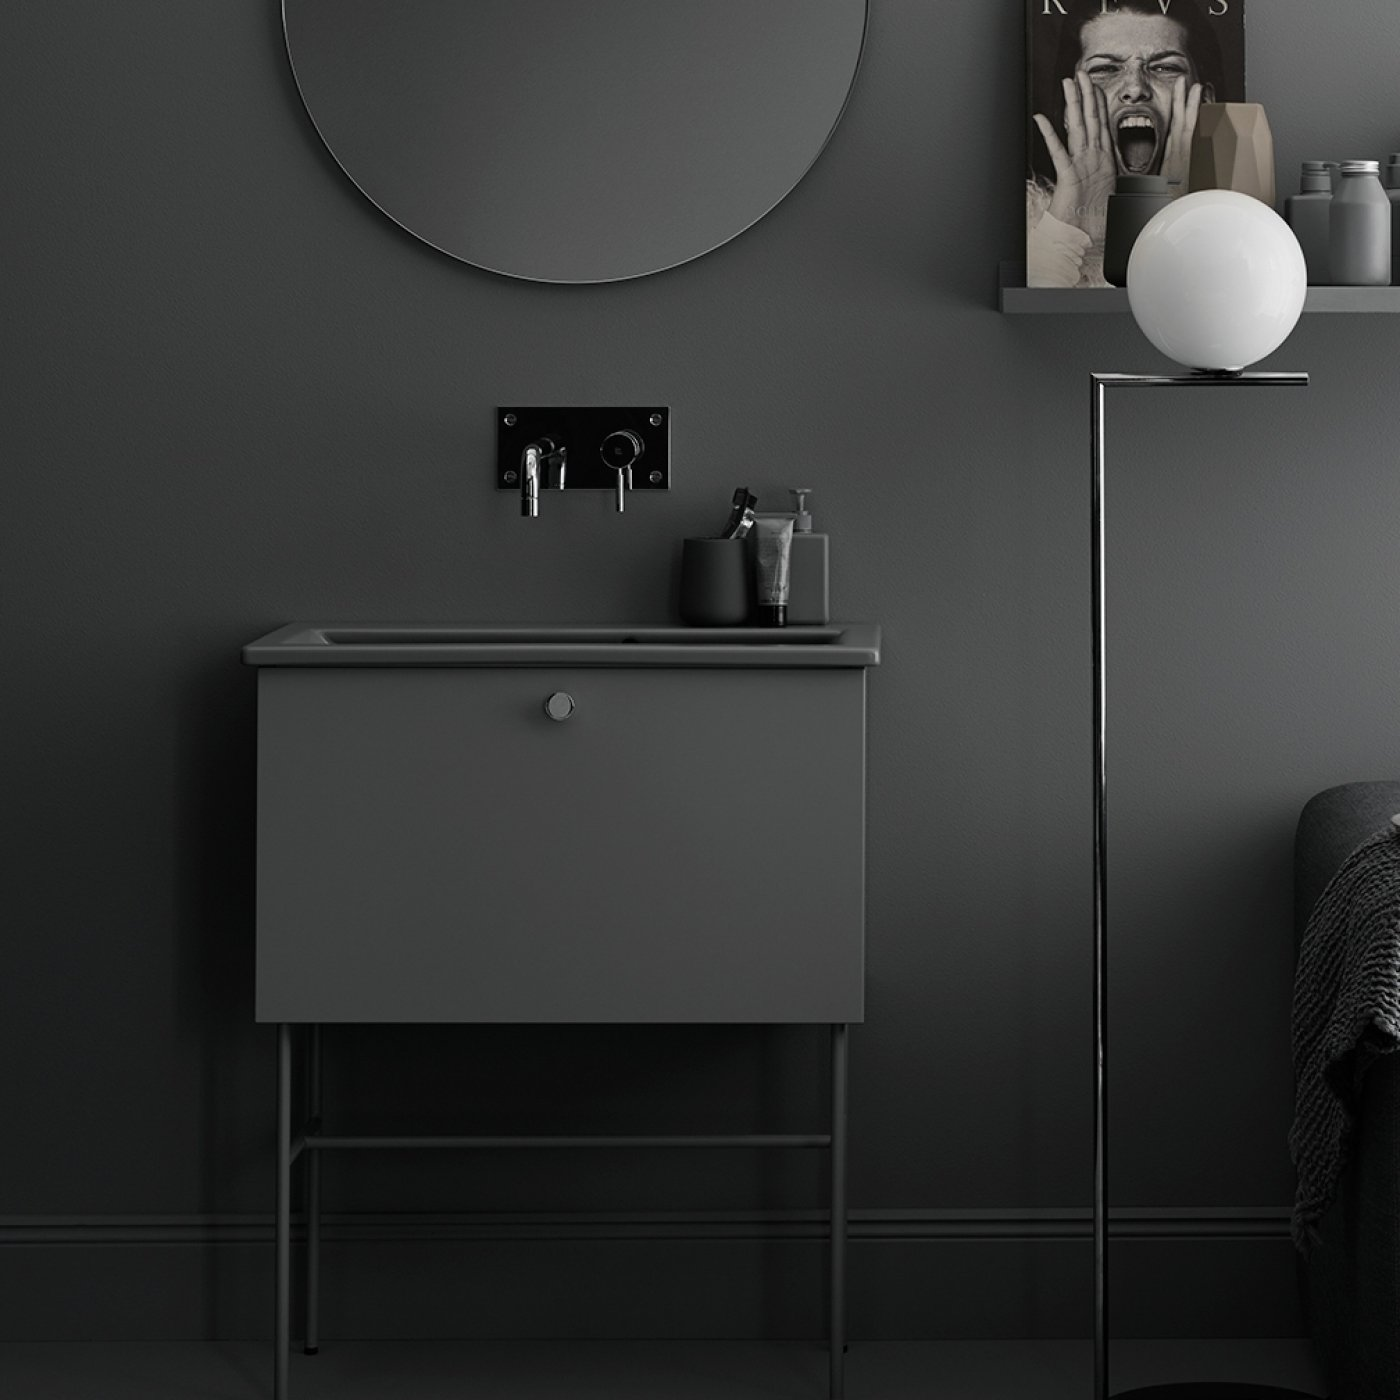 Bath Room, Floor Lighting, and Wall Mount Sink Swoon's Studio line of bathroom vanities and simple and minimalist, with slender legs and a single pull drawer for the vanity.  Photo 6 of 10 in Trend Report: Bathroom Fixtures Go Bold in a Rainbow of Retro Hues